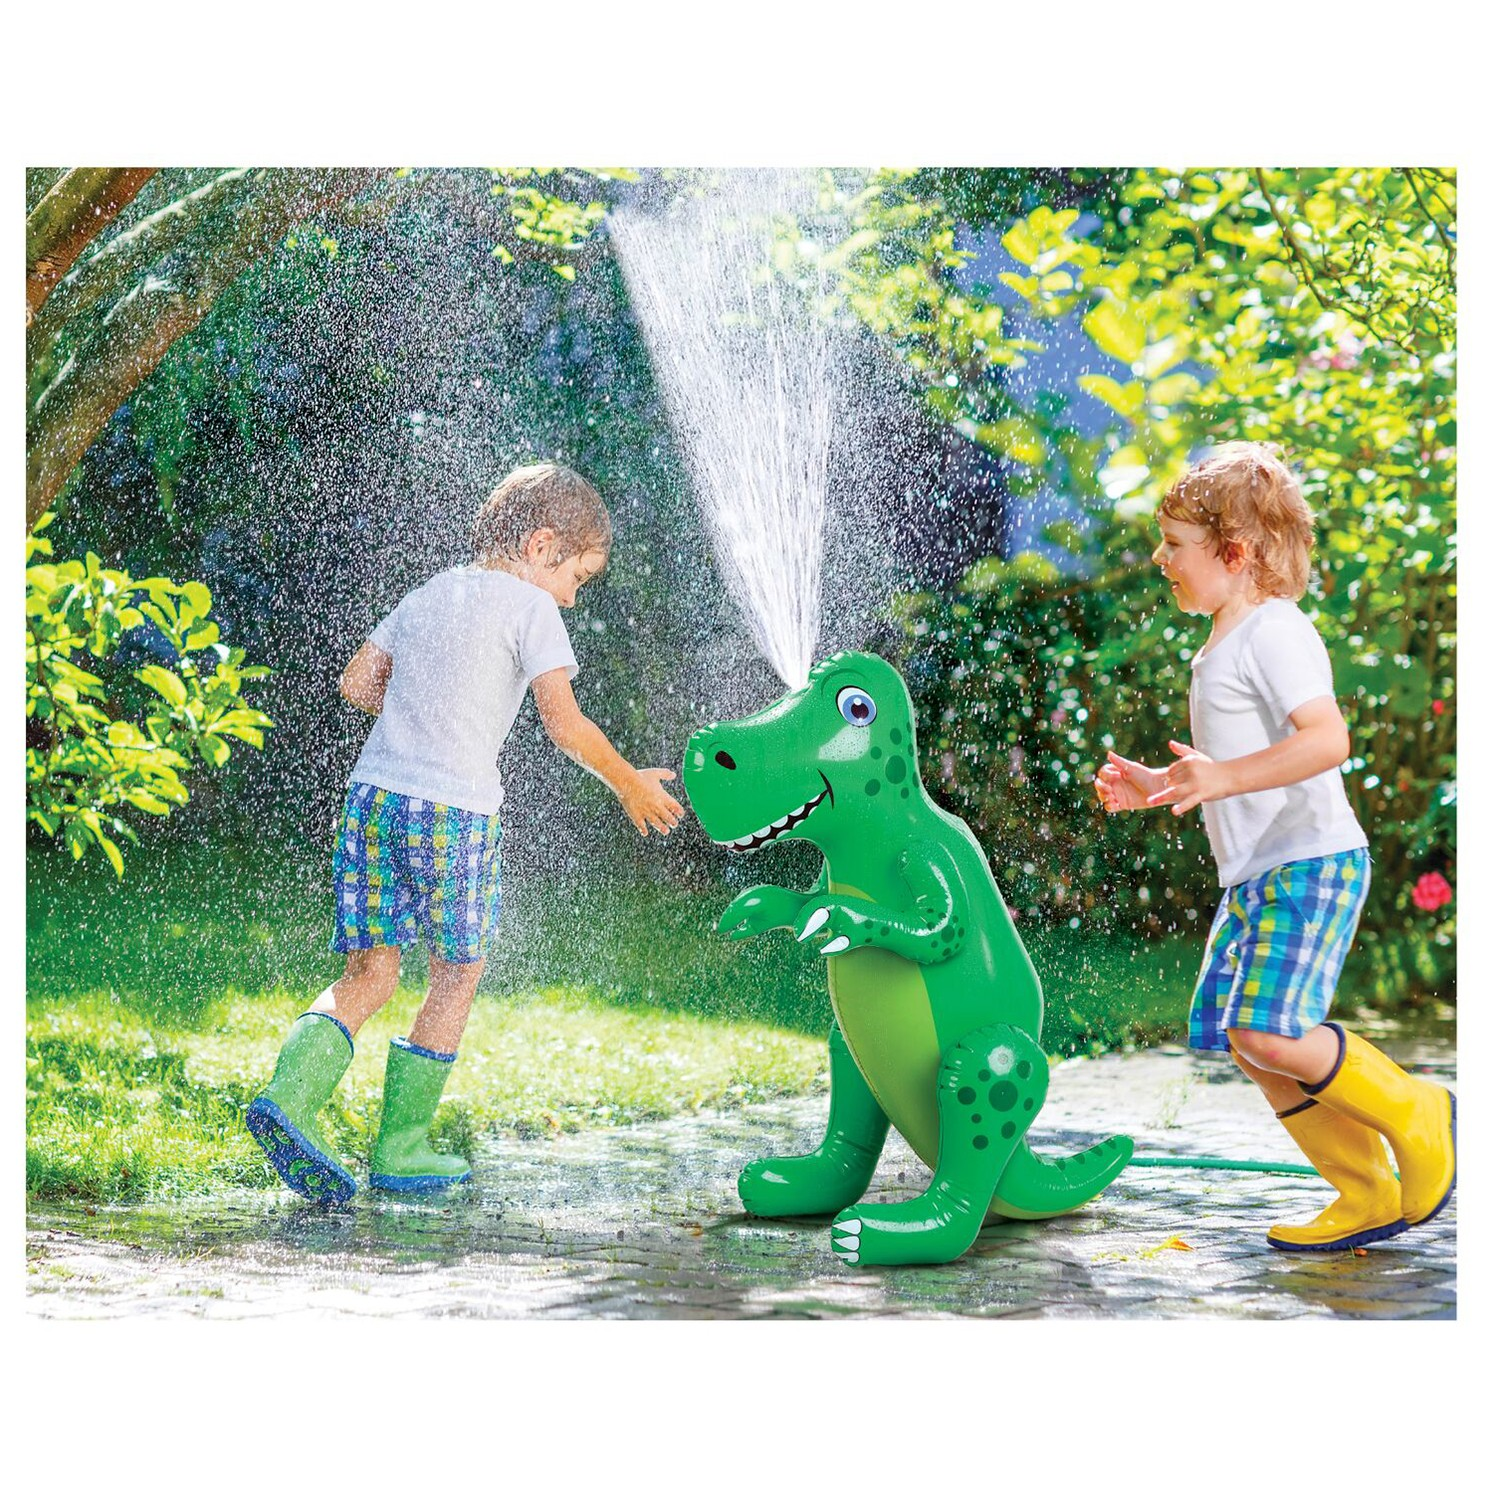 thumbnail 9 - Etna Inflatable Water Sprinklers -Unicorn, Rainbow, Dinosaur Water Toys for Kids